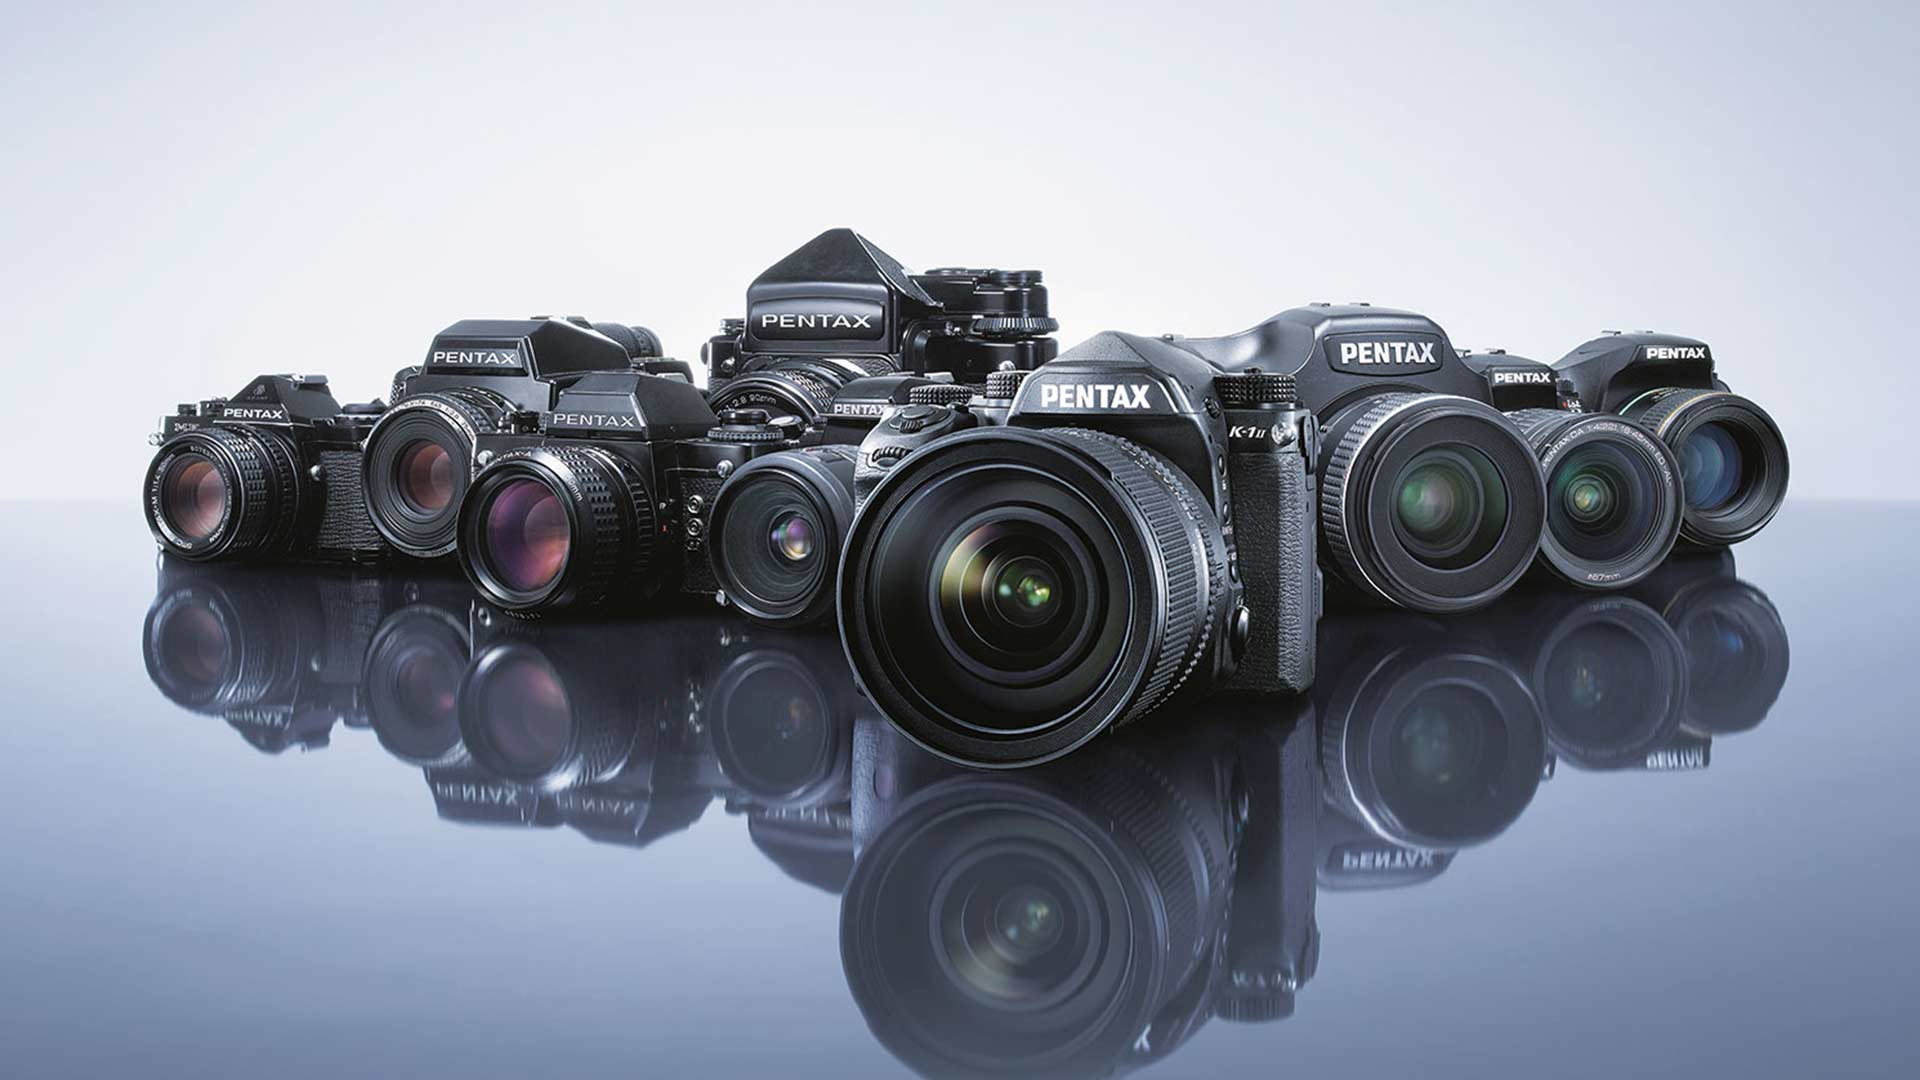 Old to new, Pentax has a rich history. Image: Ricoh Imaging.